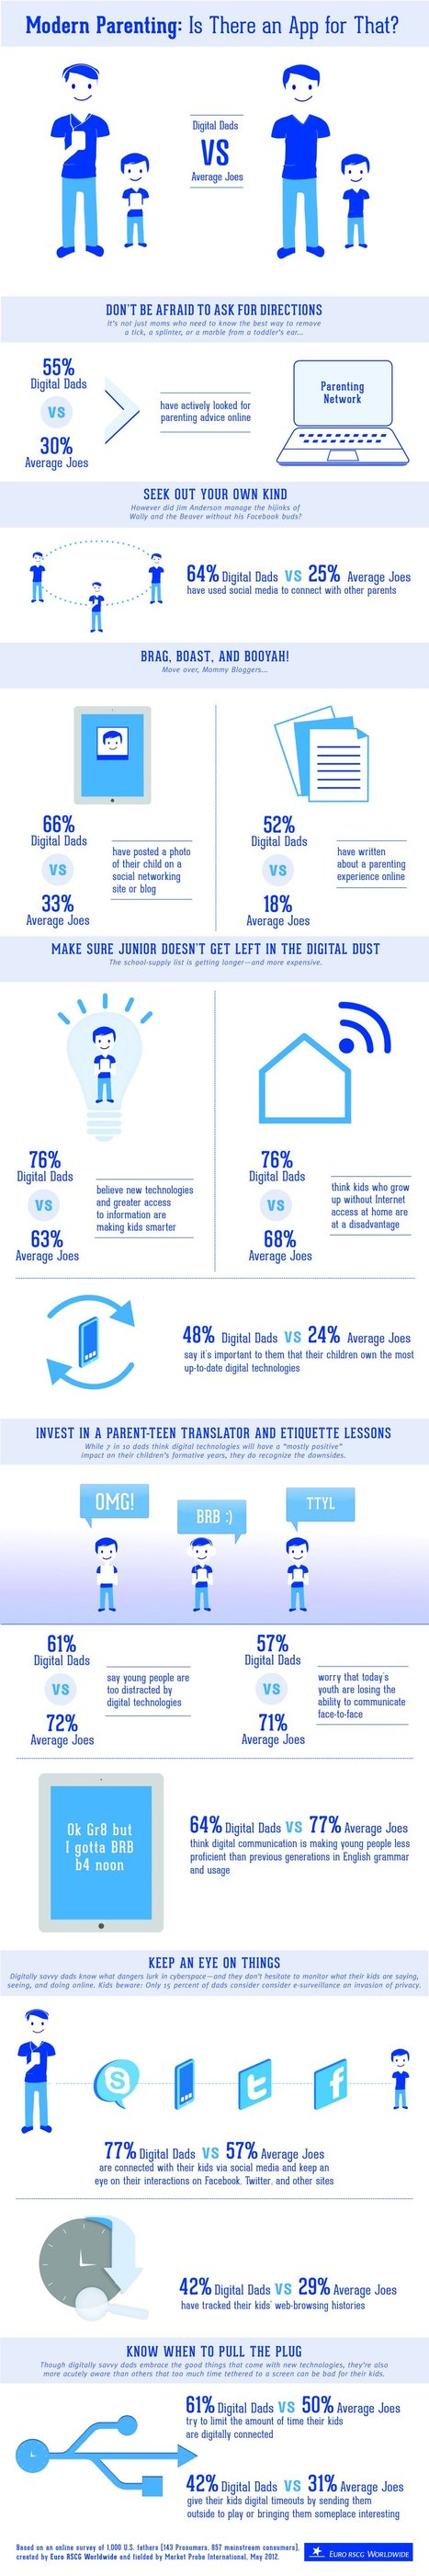 Digital Dads Are Plugging In, Getting Social [INFOGRAPHIC] | ten Hagen on Social Media | Scoop.it